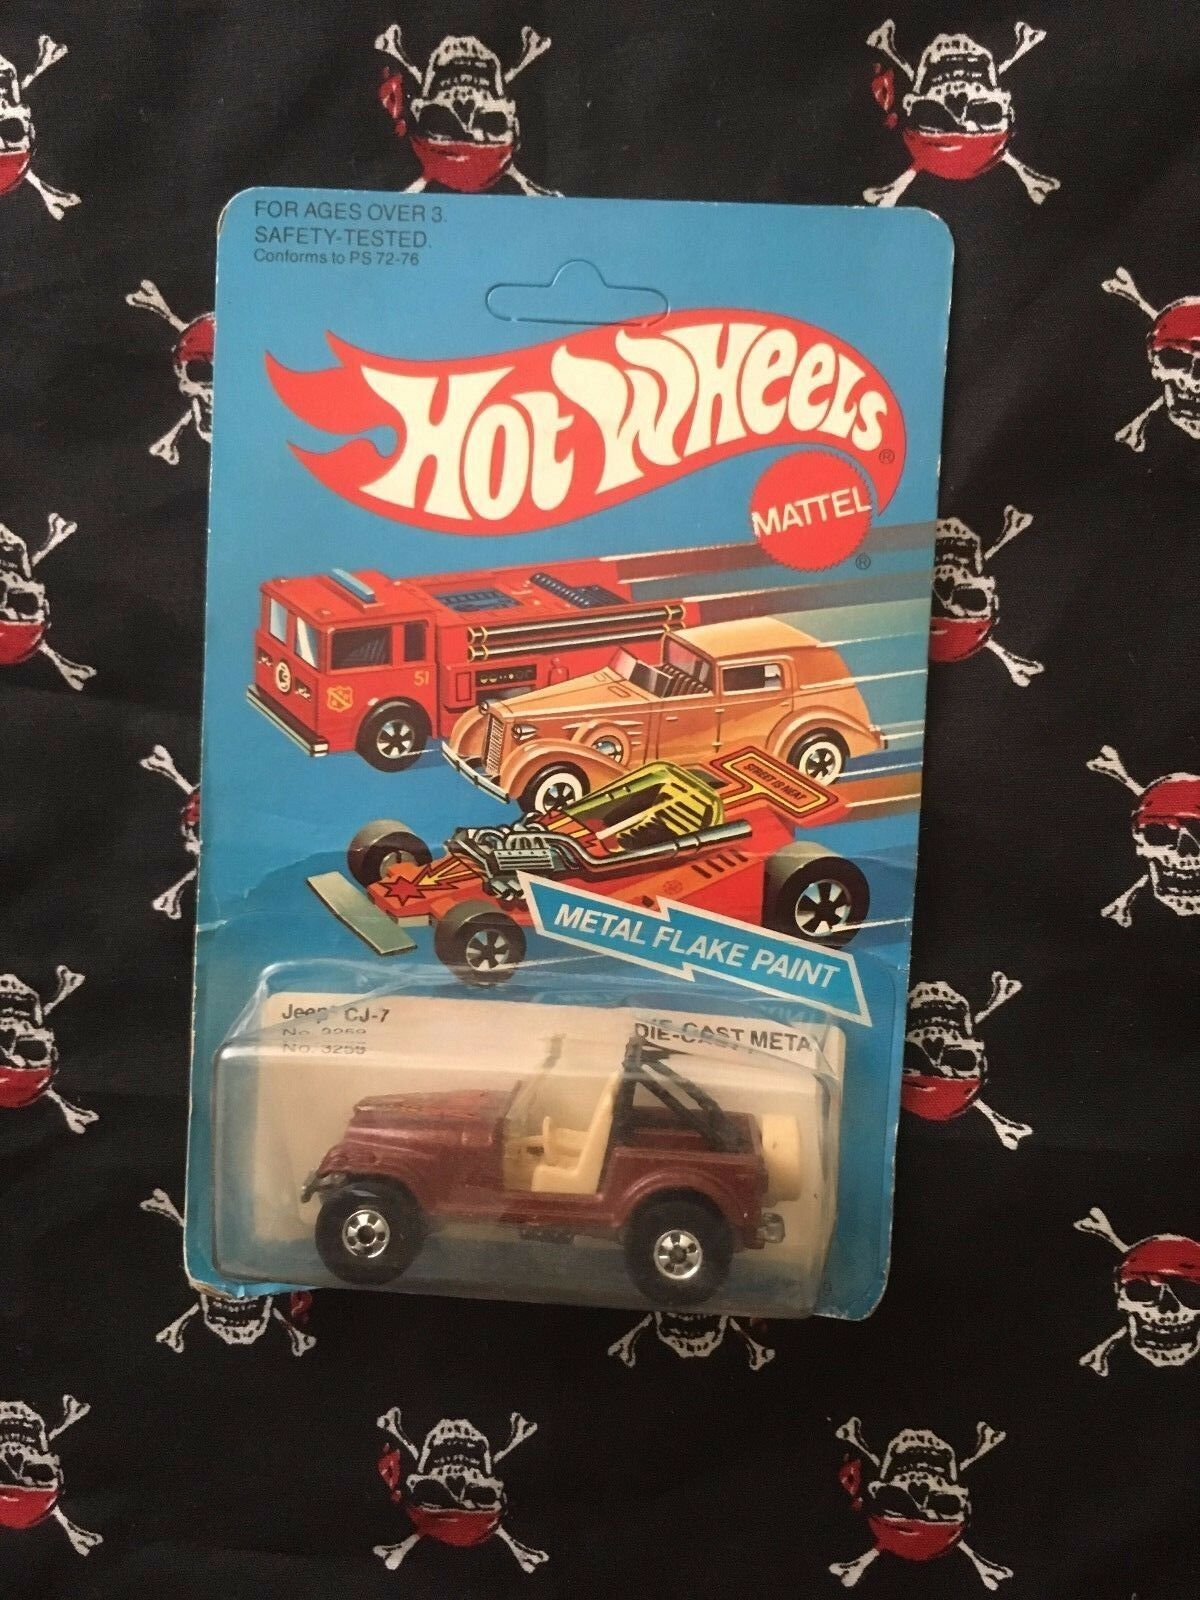 1982 Hot Wheels Jeep CJ-7 No. 3259 braun unpunched card